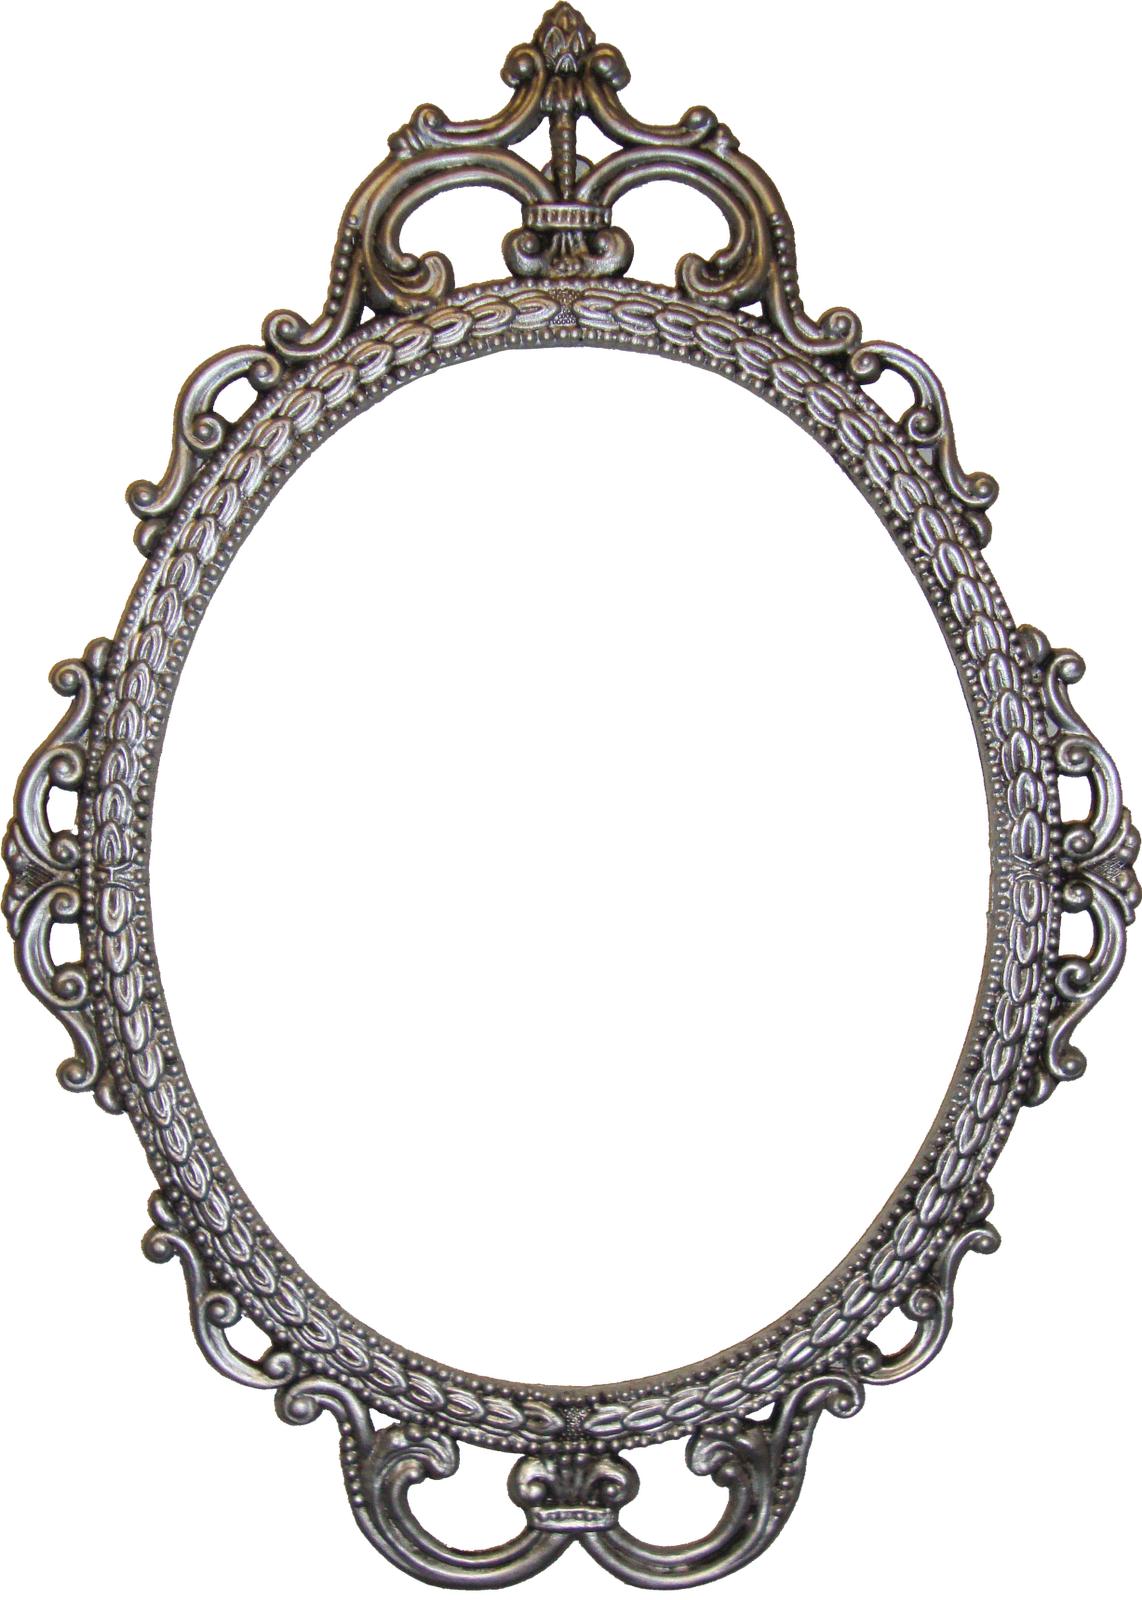 Oval frame png. Antique tattoo clipart panda